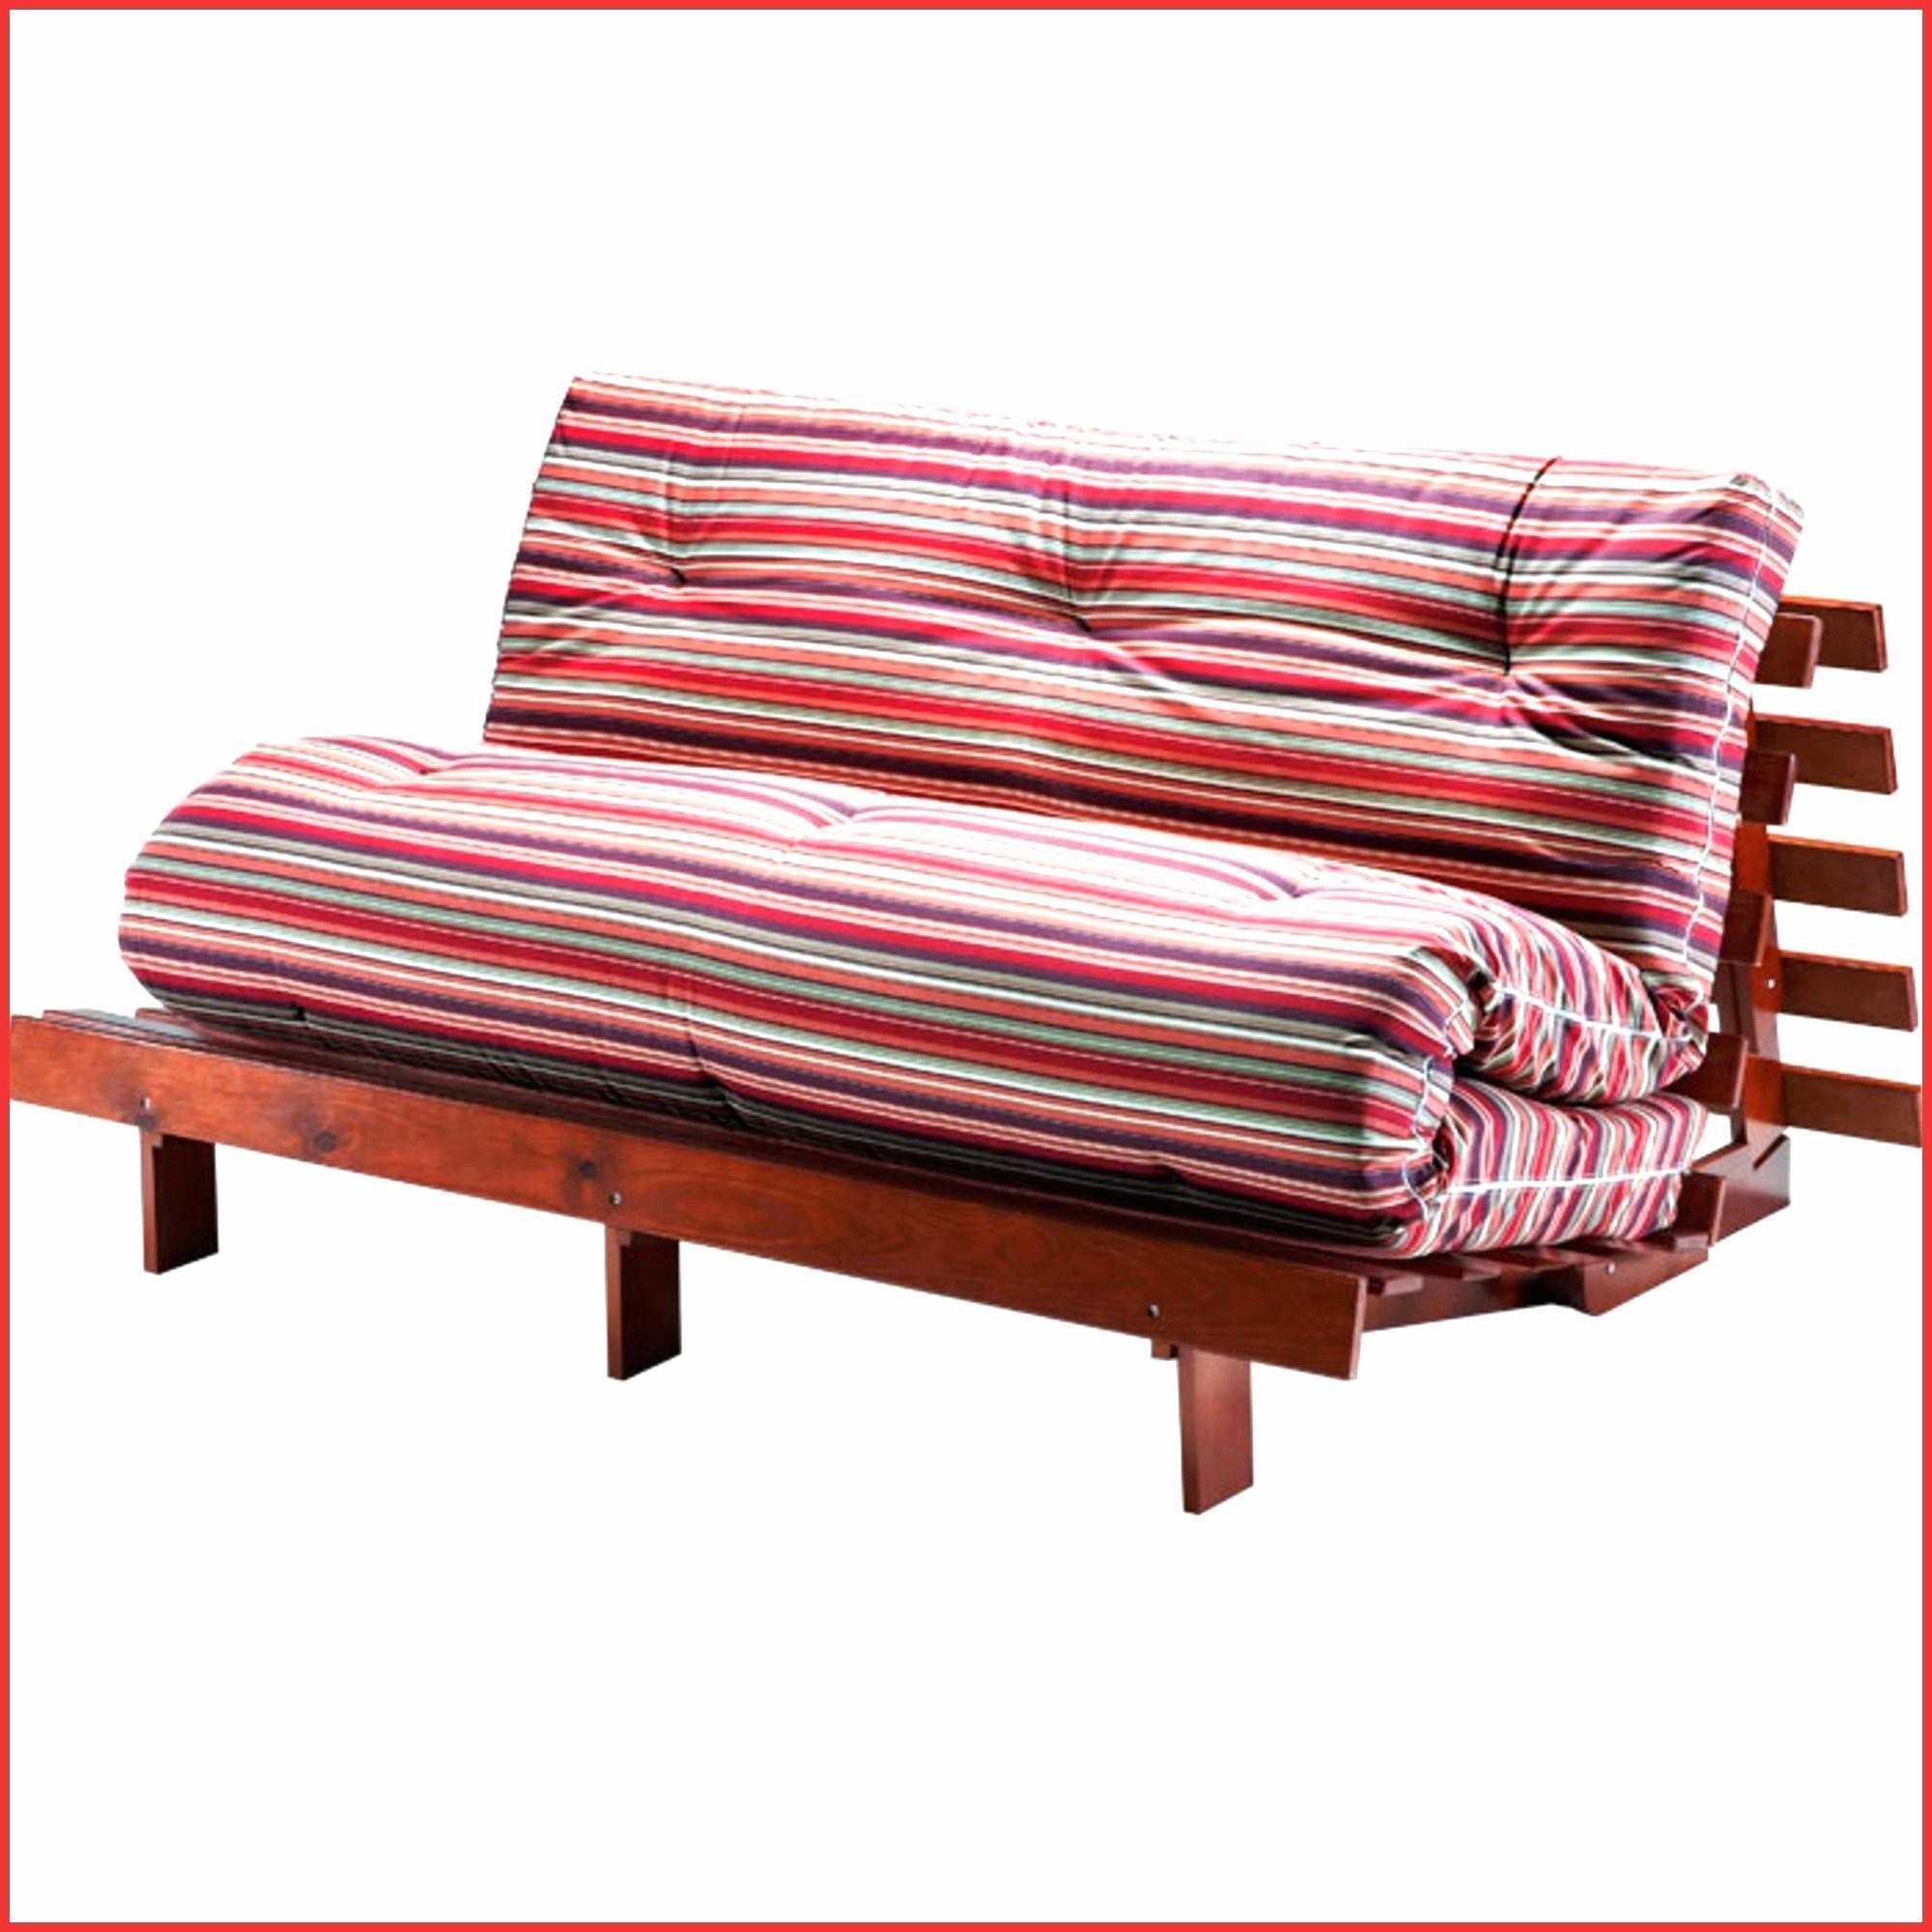 Canap lit gigogne ikea luxe canap fly 2 places canap Canape lit gigogne ikea